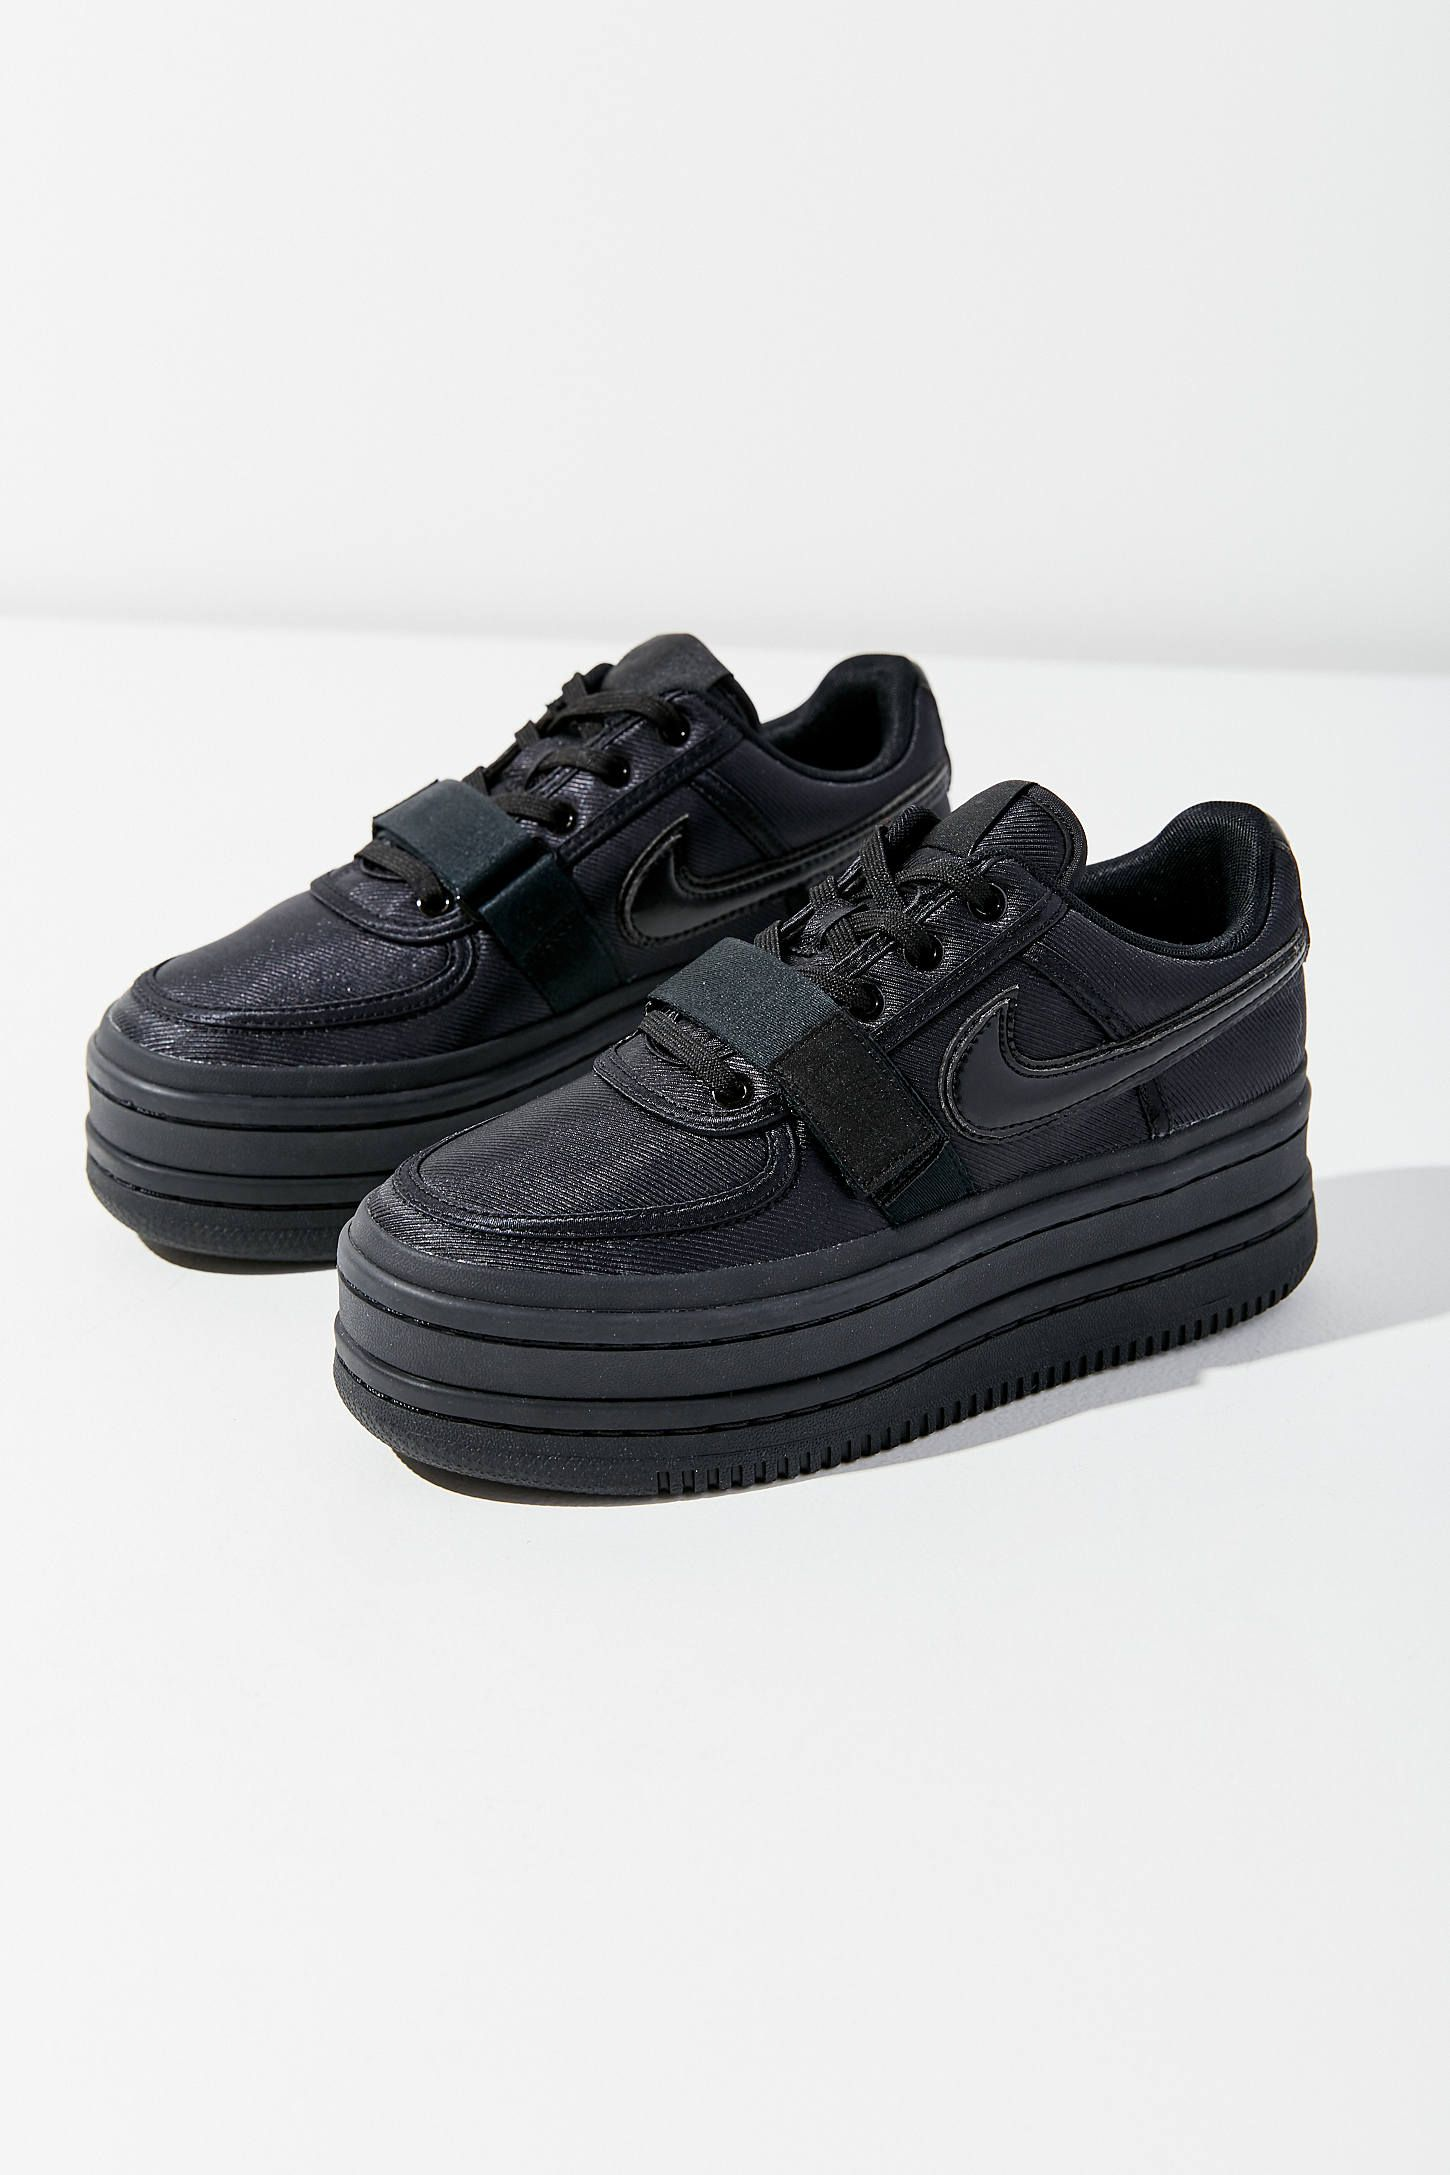 4773d66c Nike Vandal 2K Sneaker in 2019 | ♥ FASHION ♥ | Shoes, Sneakers ...